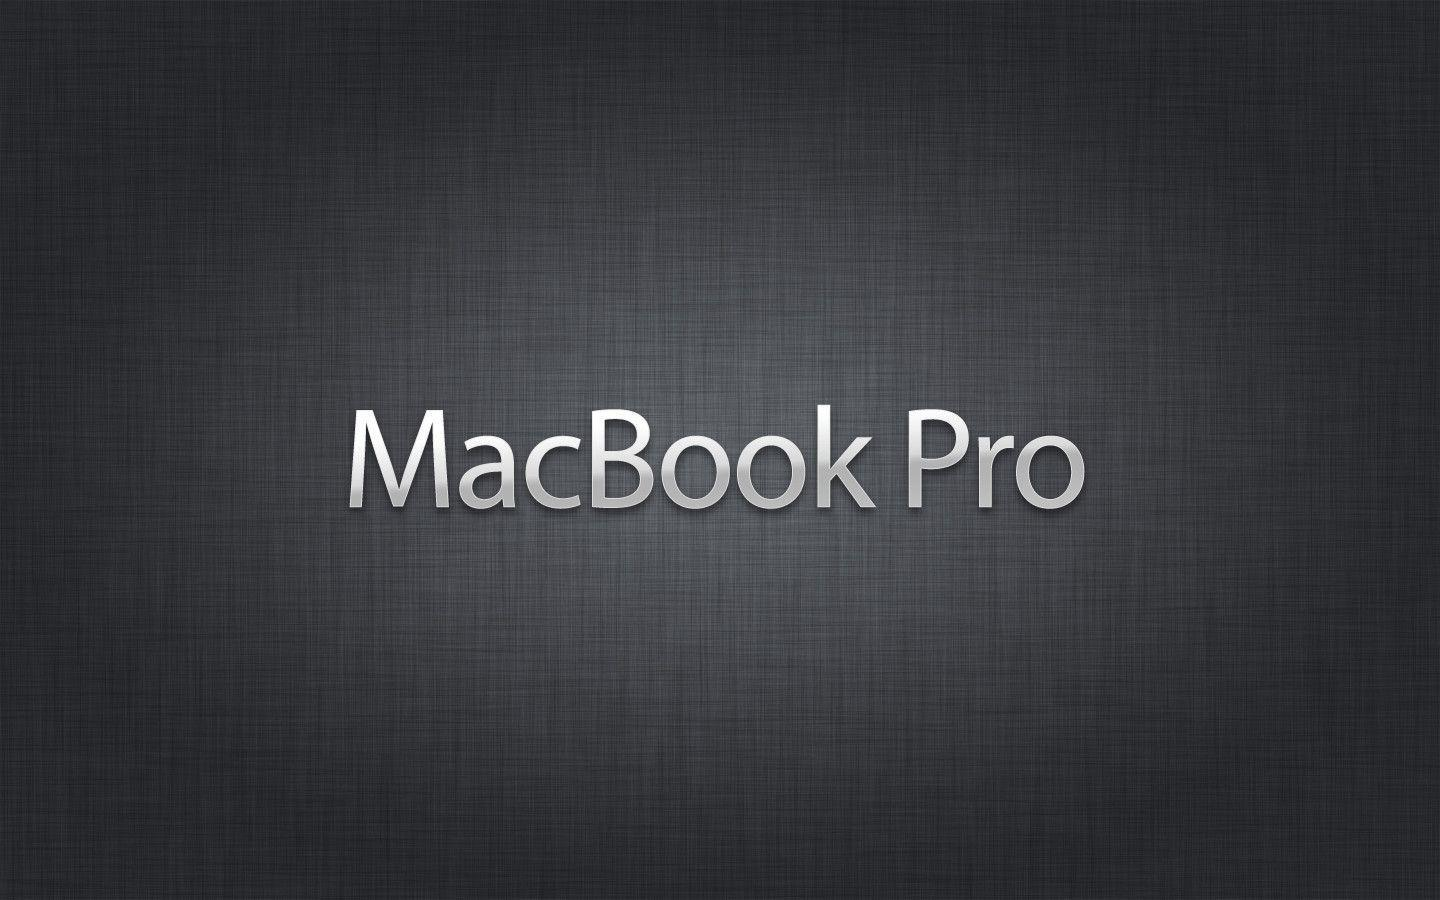 Macbook Pro Wallpapers